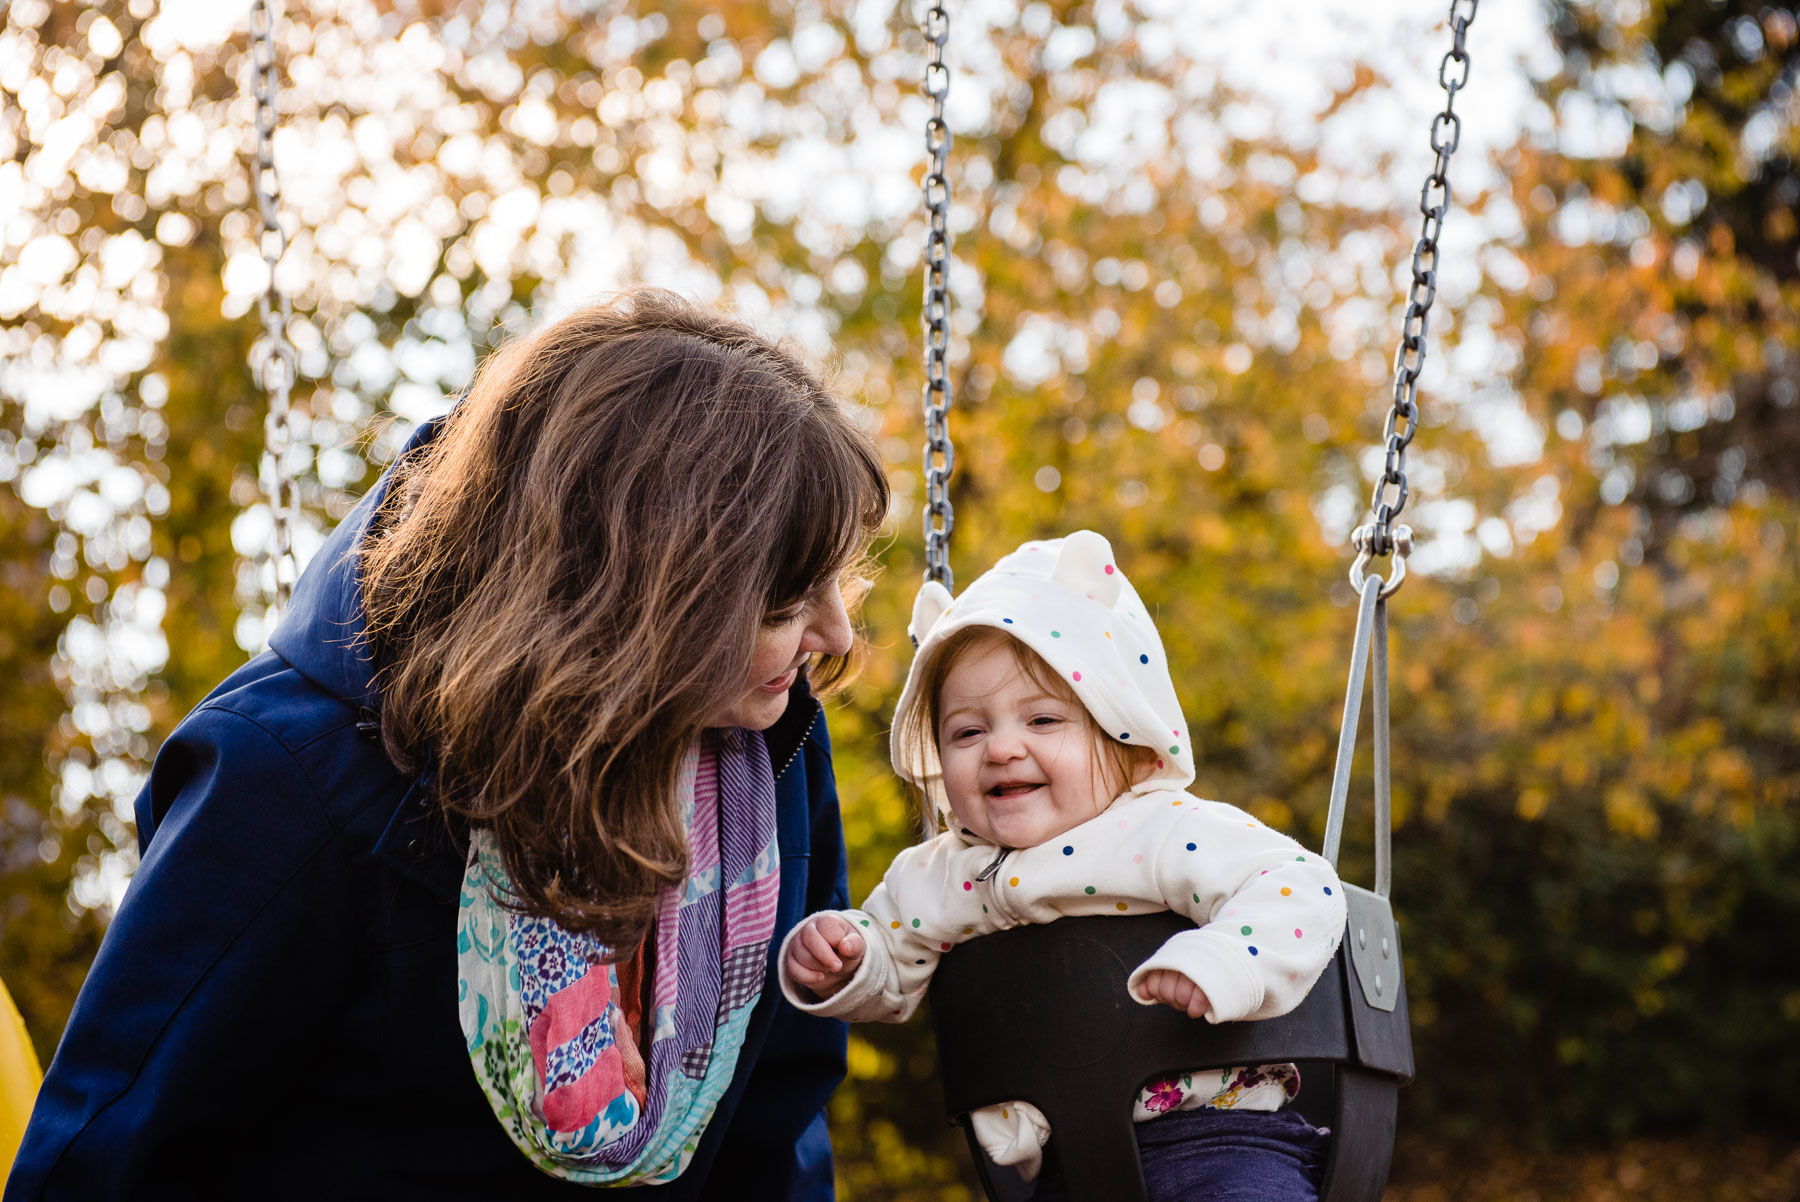 mom talking to baby on swing at playground